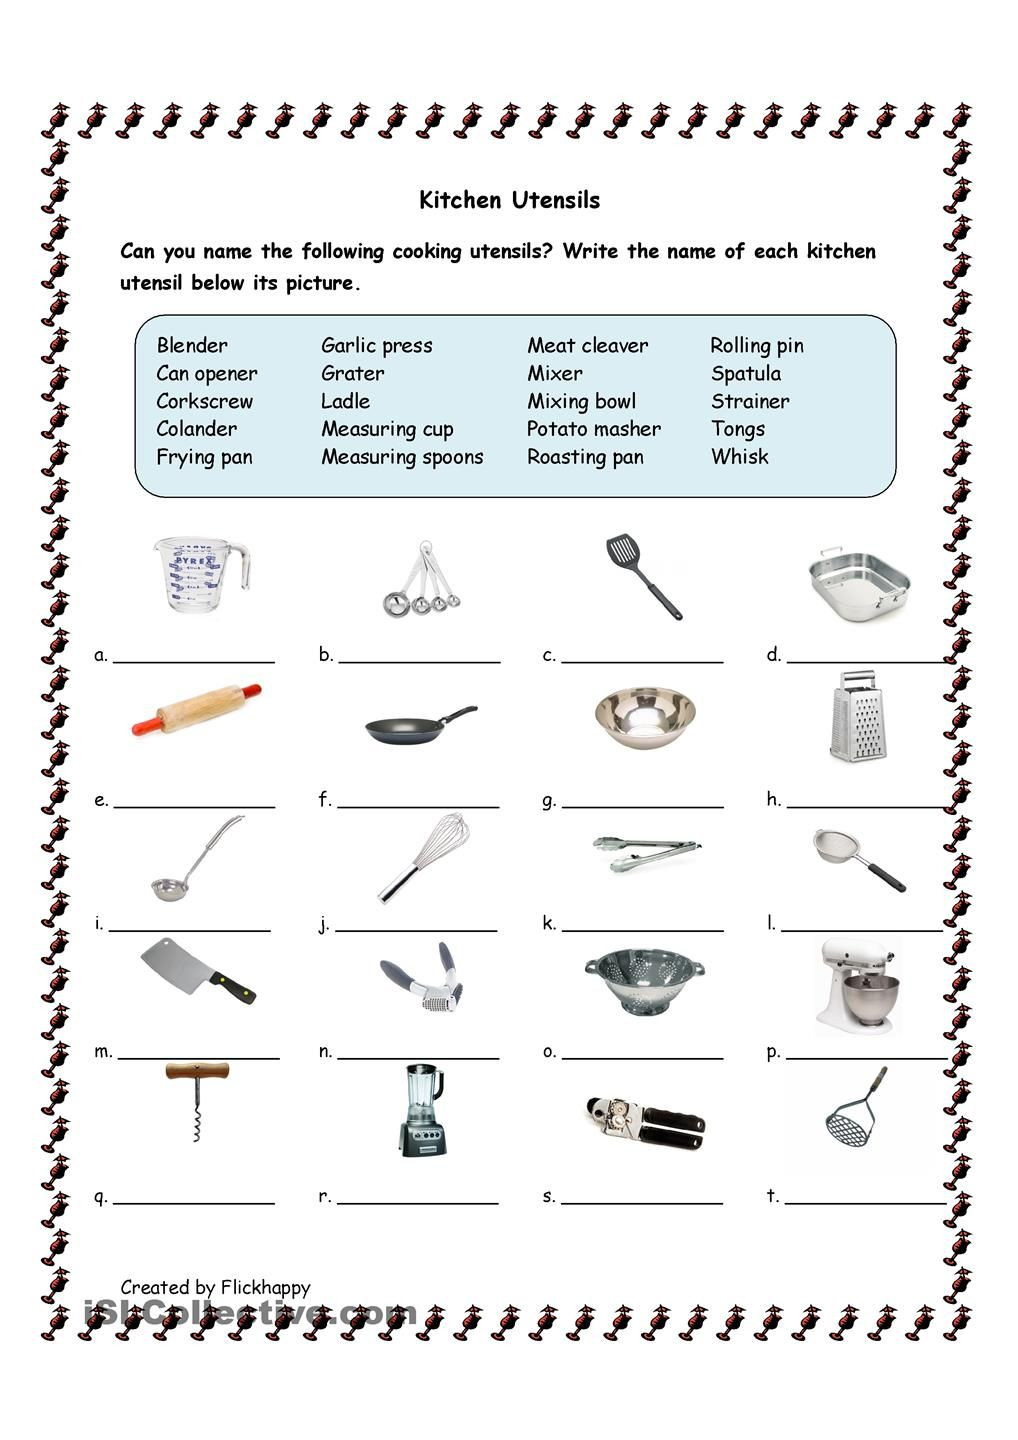 Free Printable Life Skills Worksheets Kitchen Utensils with Life Skills Classroom Cooking